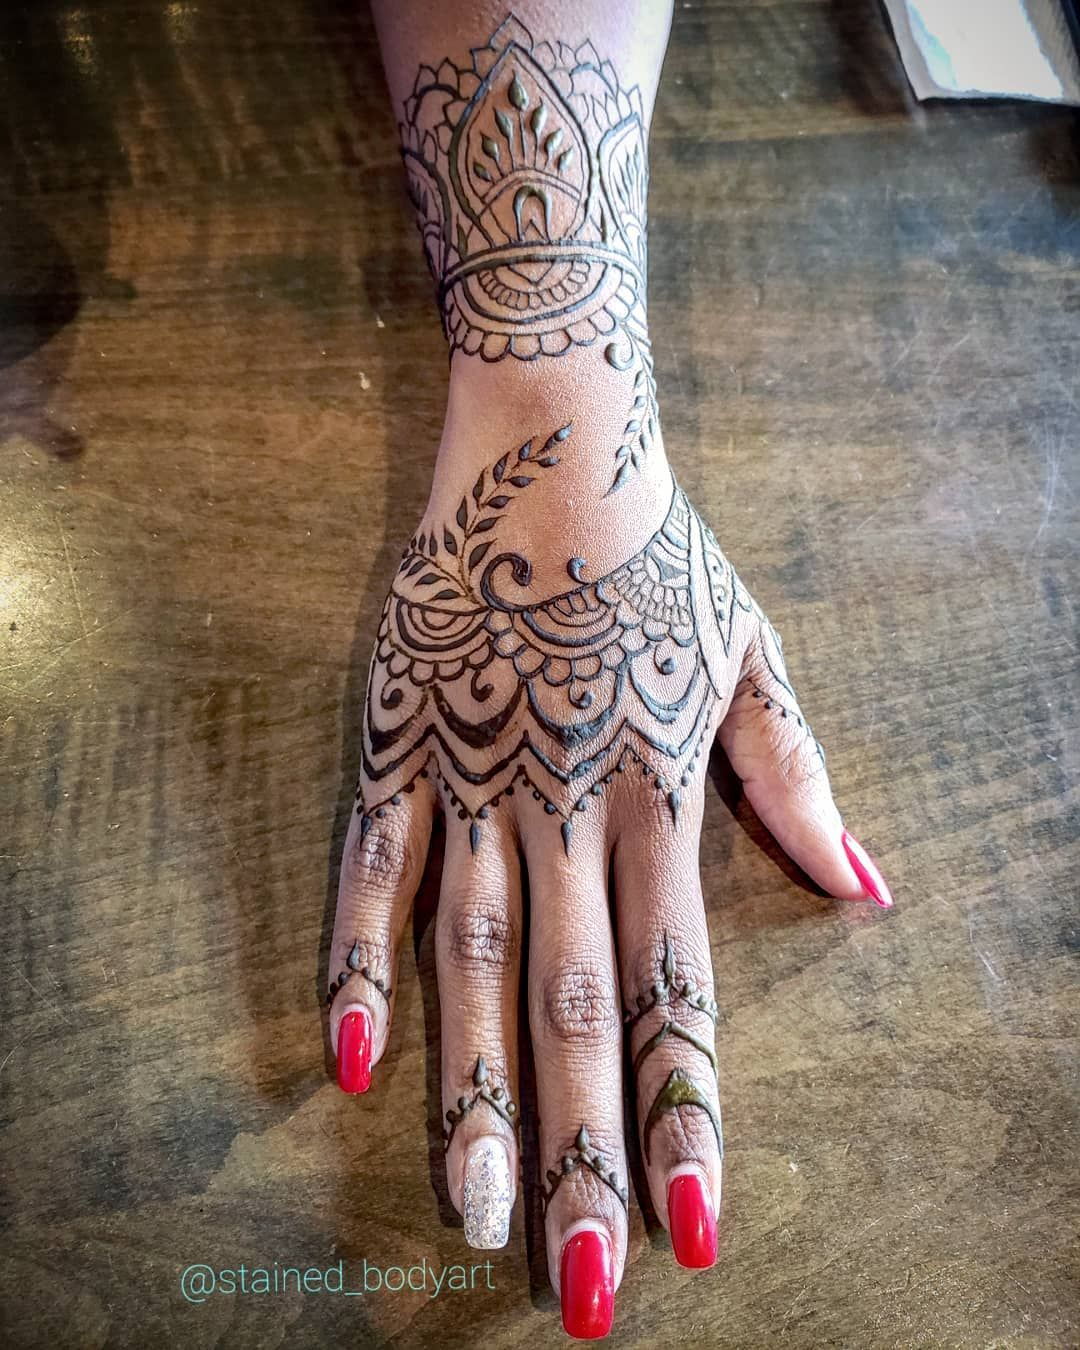 Rihanna Inspired Natural Henna Tattoo Badgalriri Fentybeauty Henna Rihanna Hand Tattoo Hand Tattoos Henna Inspired Tattoos